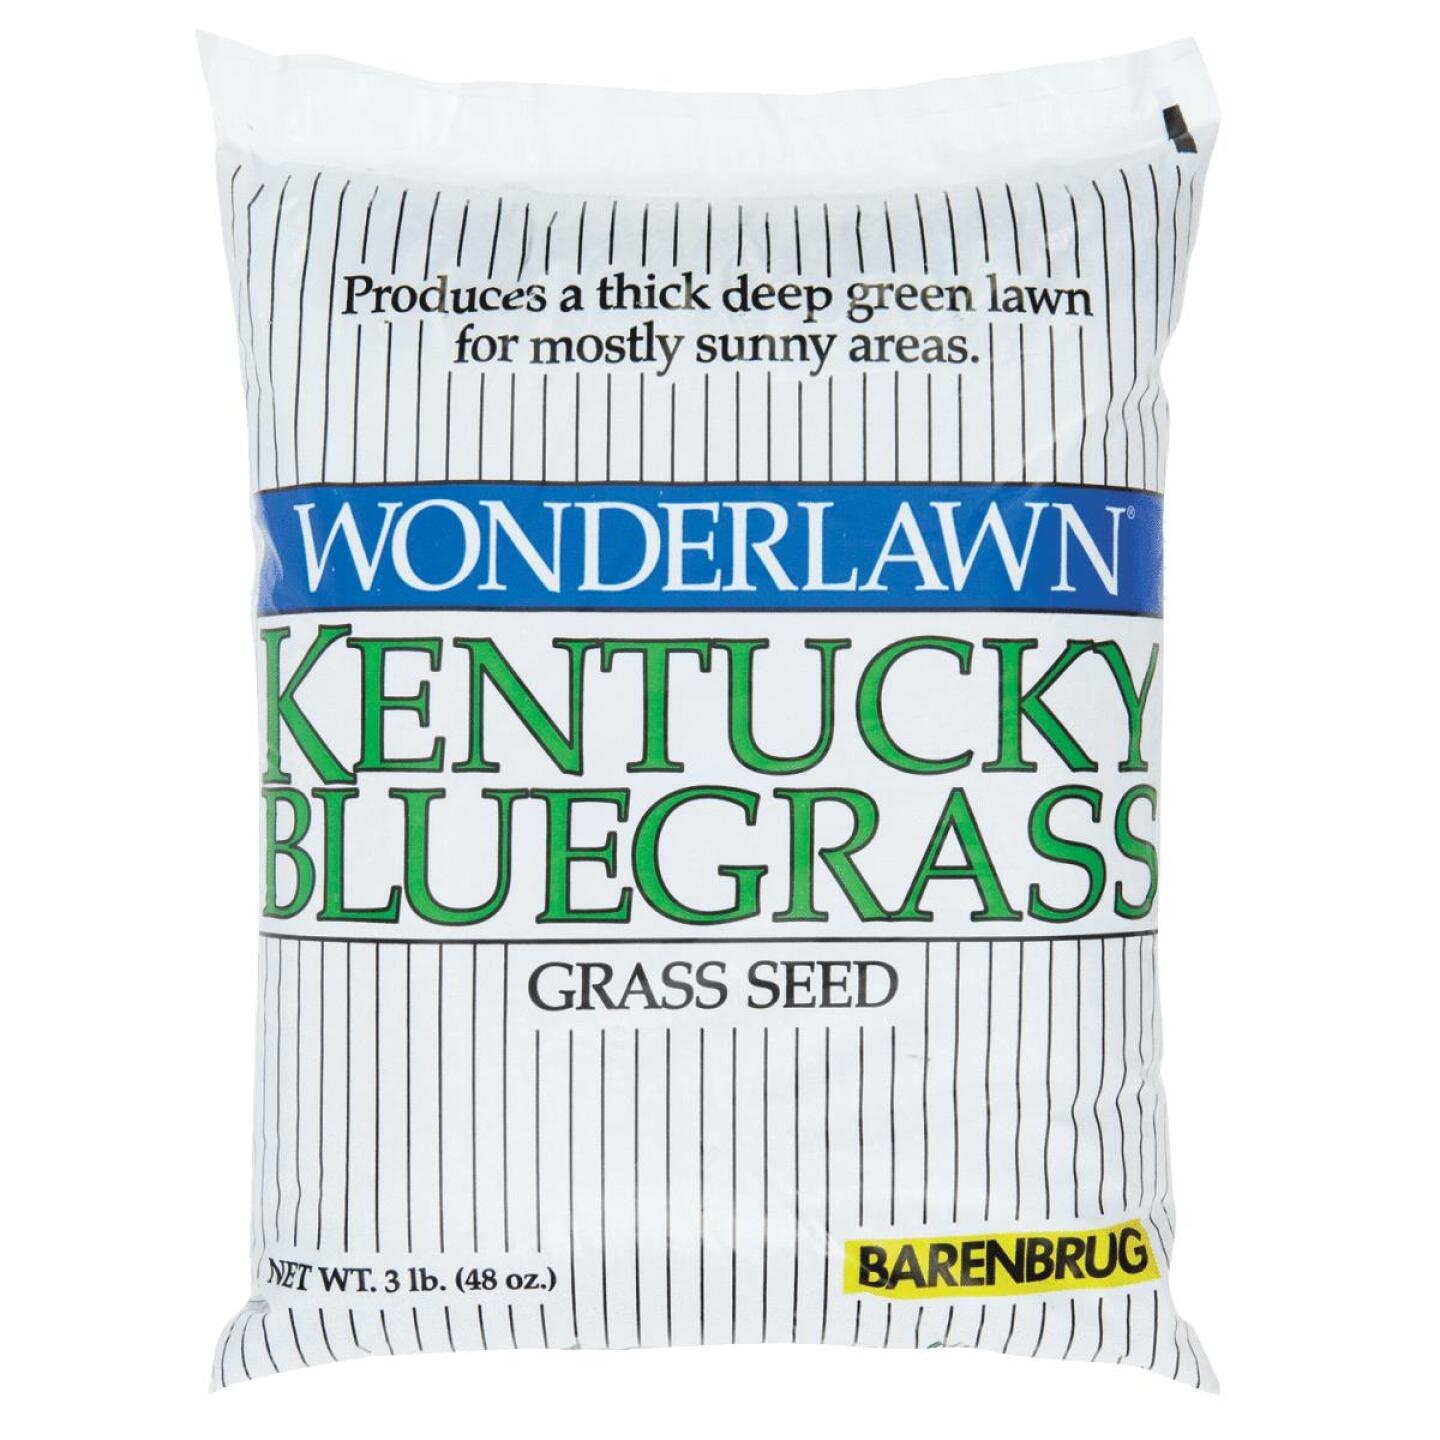 Wonderlawn 3 Lb. 1500 Sq. Ft. Coverage Kentucky Bluegrass Grass Seed Image 1